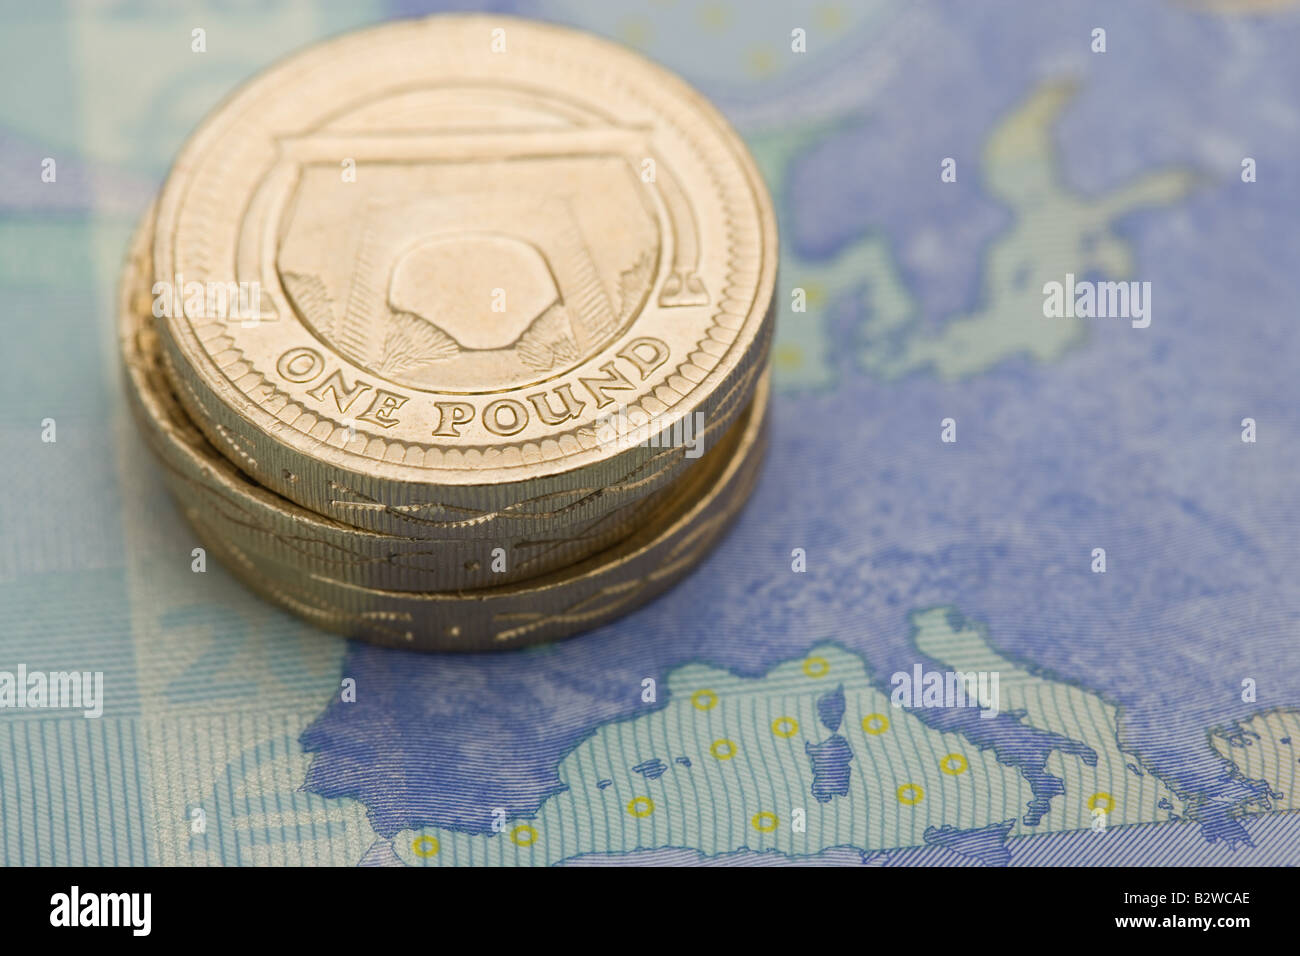 Pound coins on euro note Stock Photo